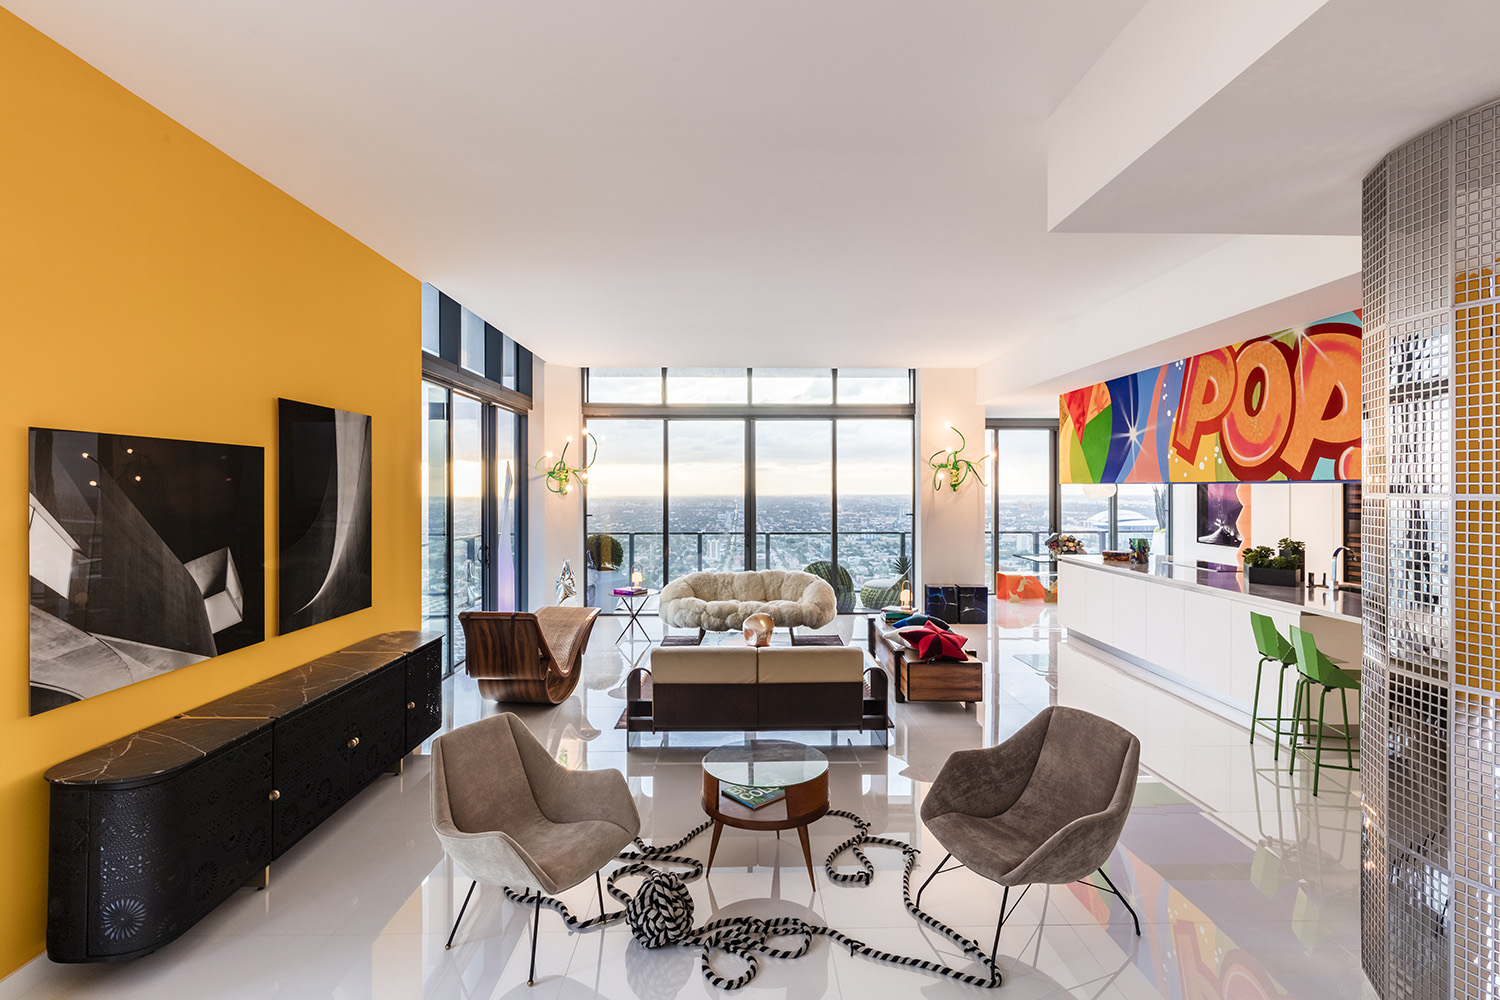 The living area holds its own against the backdrop of expansive views with stellar works by icons of Brazilian design. Kris Tamburello